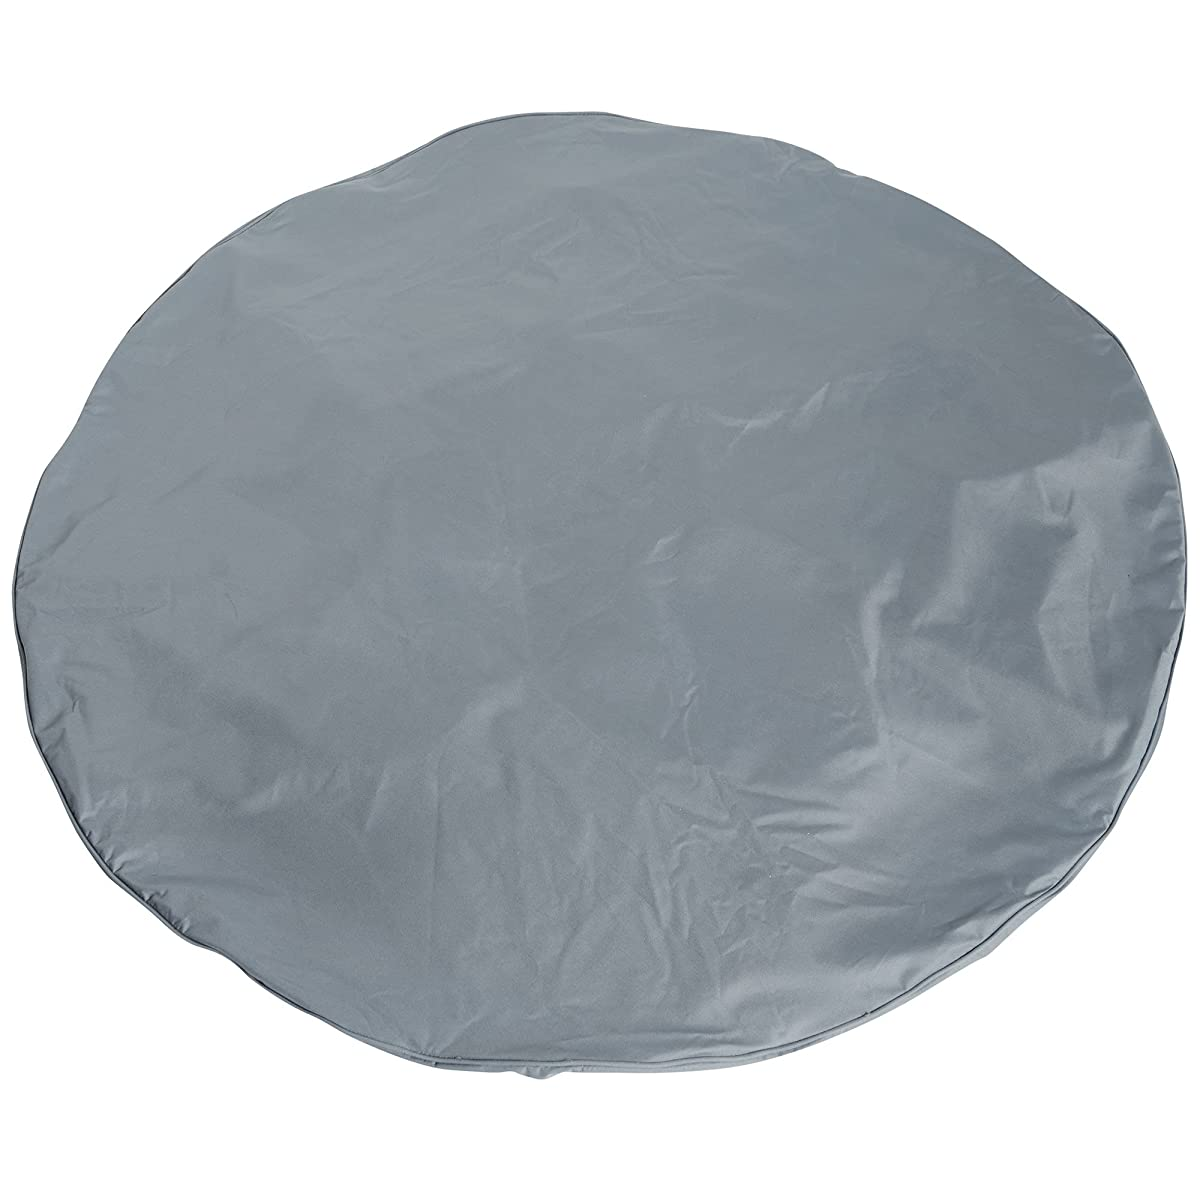 """VonHaus Round Patio Table and Chair Cover - 'The Storm Collection' Premium Heavy Duty Waterproof Outdoor Furniture Set Protection - Slate Gray with Beige Trim - 96"""" Diameter x 22 Height"""